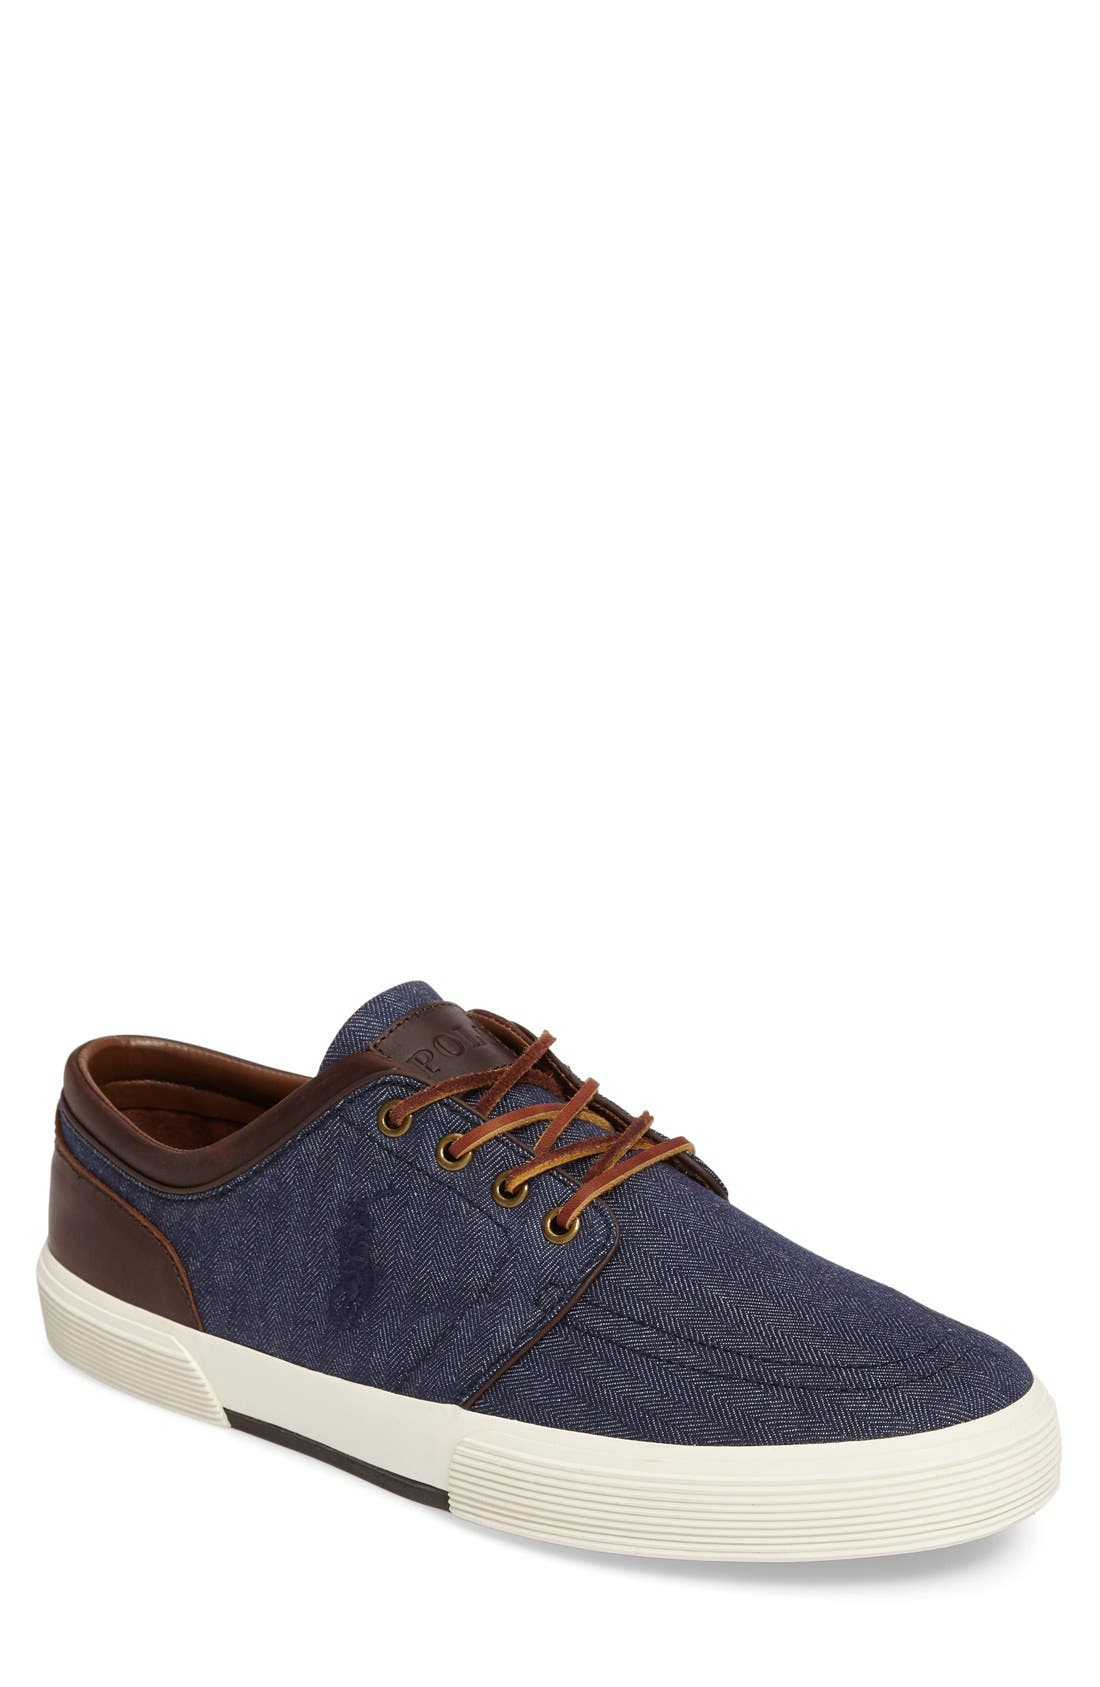 Alternate Image 1 Selected - Polo Ralph Lauren 'Faxon Low' Sneaker (Men)